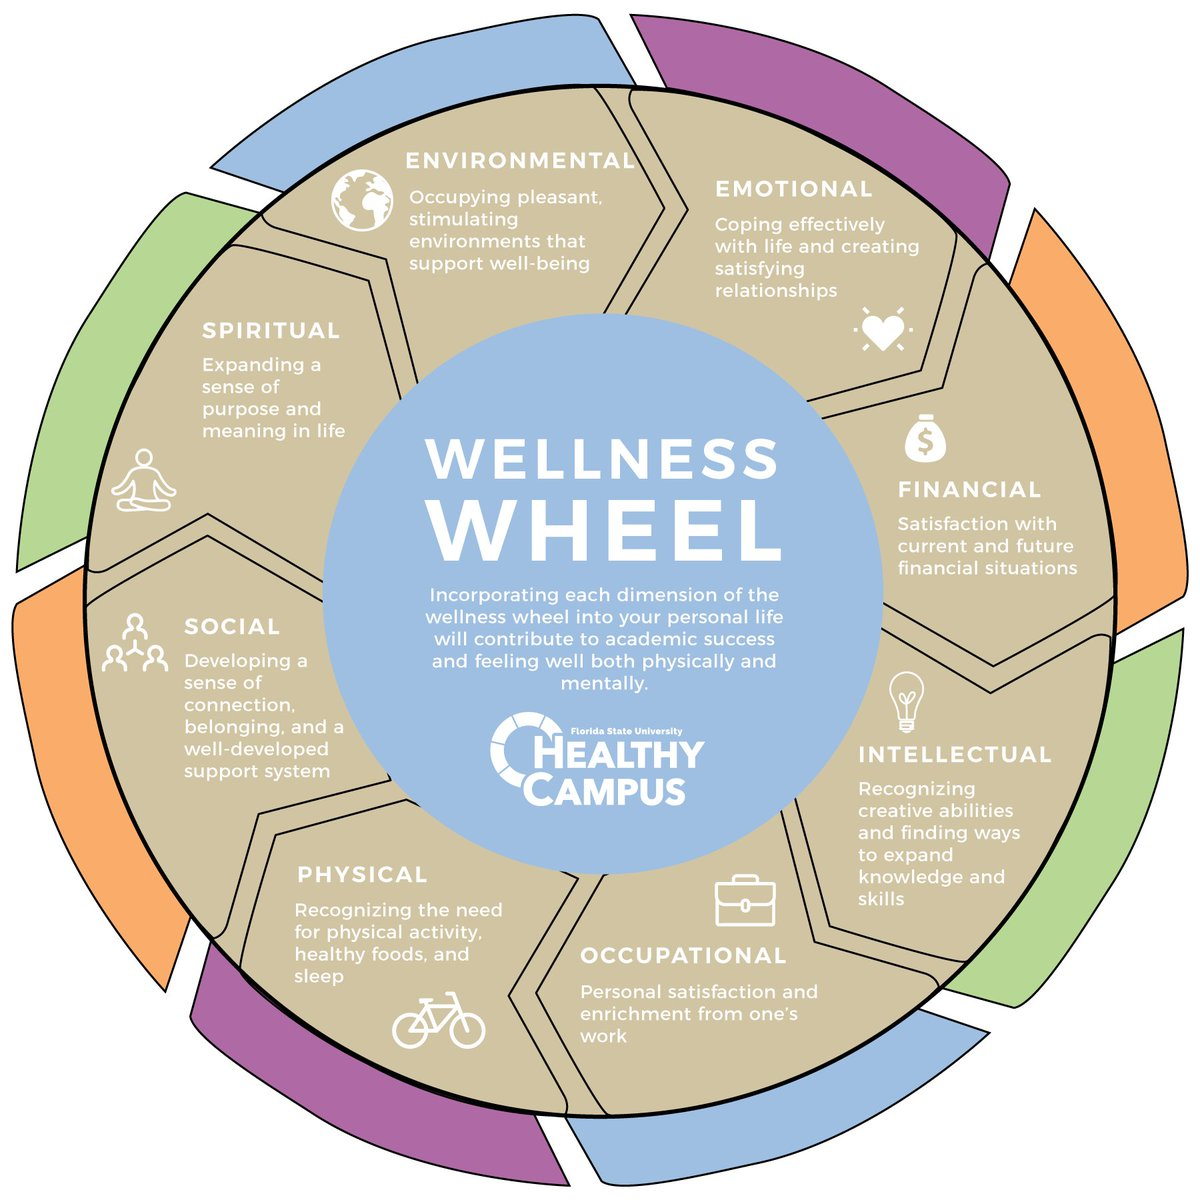 wellness wheel activity